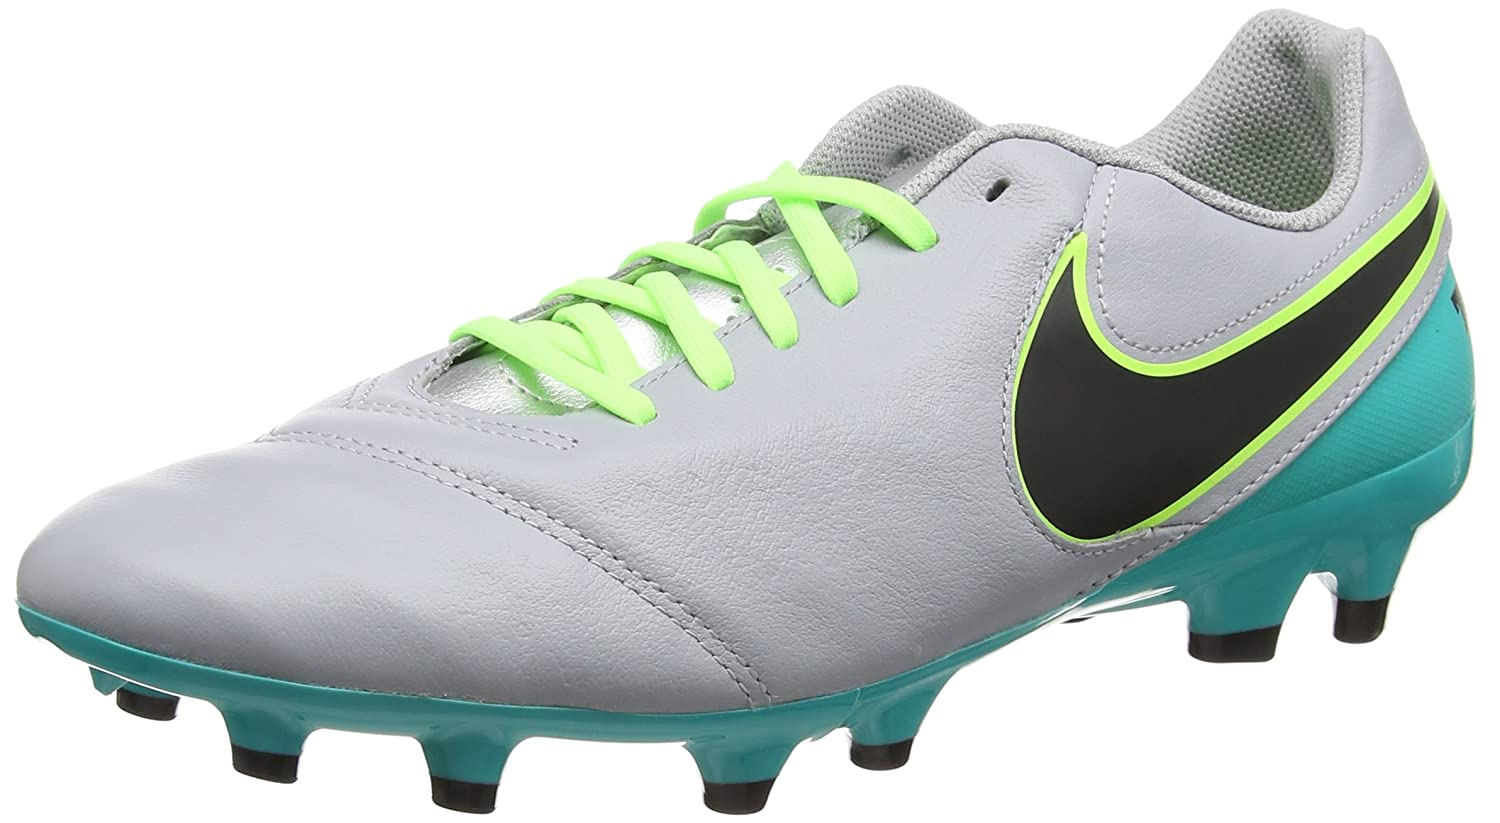 Nike メンズ B004P4XTRS10.5 D(M) US|Wolf Grey, Black, Clear JadeWolf Grey, Black, Clear Jade10.5 D(M) US